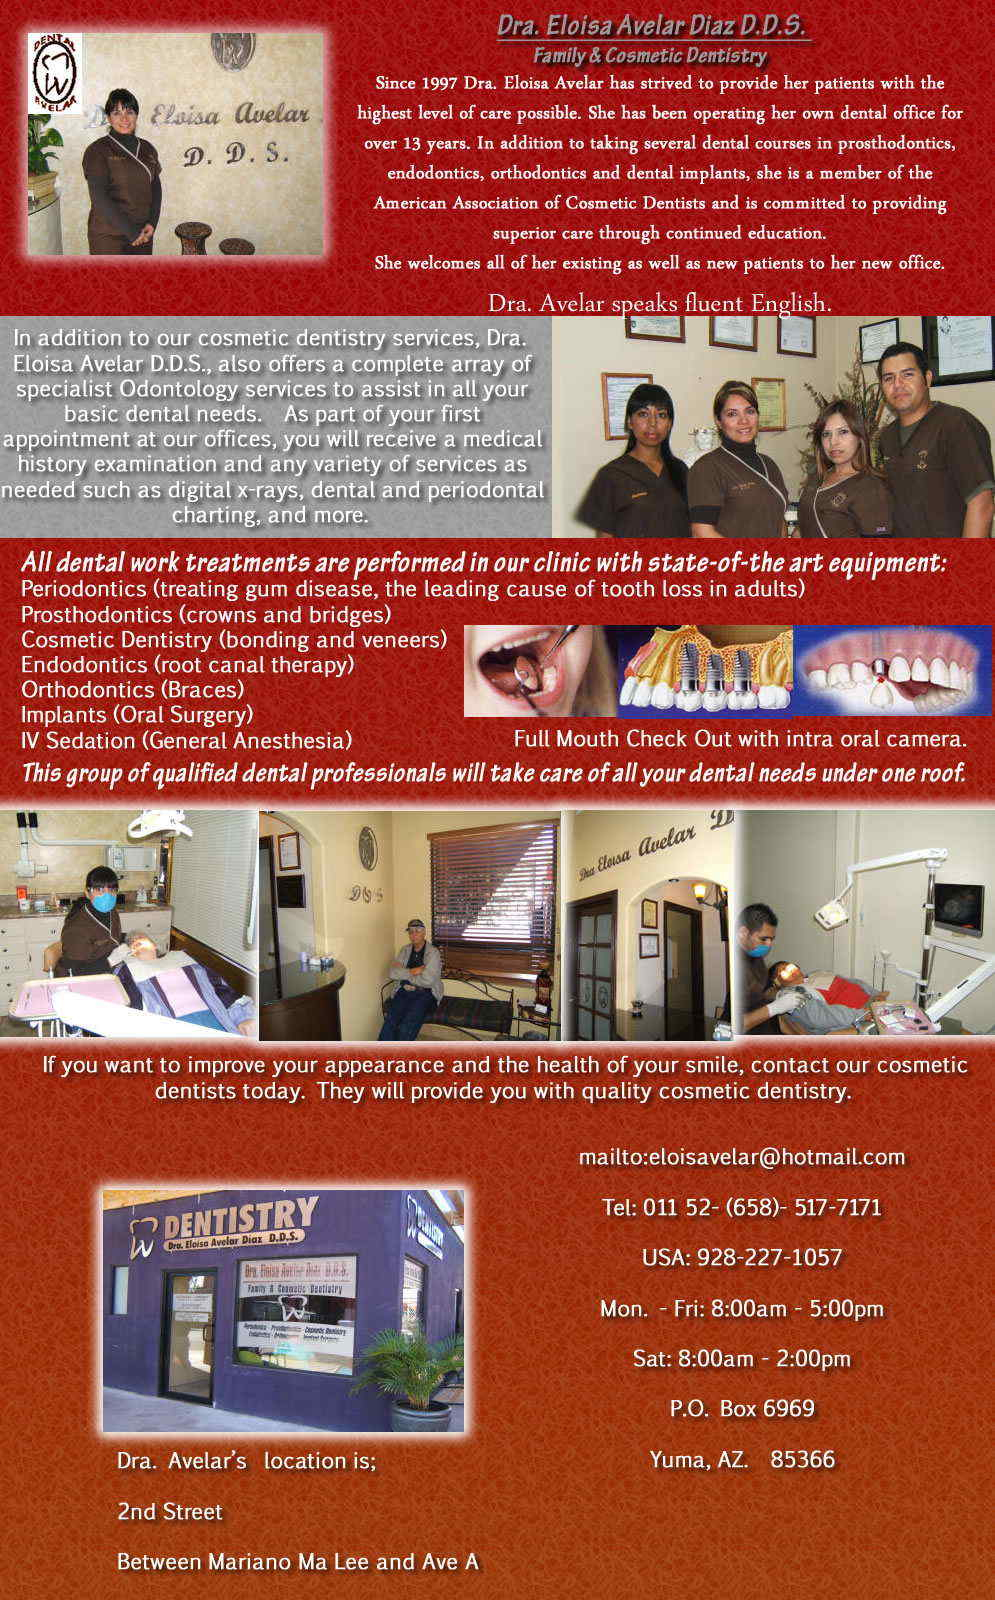 Dra. Eloisa Avelar Diaz D.D.S. in Algodones  in Algodones  Family & Cosmetic Dentistry. <br> Periodontics - treating gum disease, the leading cause of tooth loss in adults.  Prosthodontics - crowns and bridges.  Cosmetic Dentistry - bonding and veneers.  Endodontics - root canal therapy.  Orthodontics - Braces.  Implants - Oral Surgery.  IV Sedation / General Anesthesia. Family & Cosmetic Dentistry. <br> Periodontics - treating gum disease, the leading cause of tooth loss in adults  Prosthodontics - crowns and bridges  Cosmetic Dentistry - bonding and veneers  Endodontics - root canal therapy  Orthodontics - Braces  Implants - Oral Surgery  IV Sedation / General Anesthesia  Cosmetic Dentistry Bonding Veneers Jackets Inlays Onlays  Traditional Acrylic Dentures Traditional Partials Flexible Full Dentures Metal Bridges  Porcelain Bridges Porcelain Bridges with Gold Teeth Whitening Immediate Upper & Lower Dentures  Tissue Resculpting Orthodontics Metal Crowns Porcelain Crowns   Root Canals Metal Posts Metal Free Posts Composite Posts Composite Fillings White Fillings Partials Denture Repairs Relines Proflex Dentures TCS Flexible Partials Extractions Implants Space Maintainers X-RaysDeep Cleaning Traditional Cleaning Fluoride Treatments General Oral Surgery Prescriptions Sedation